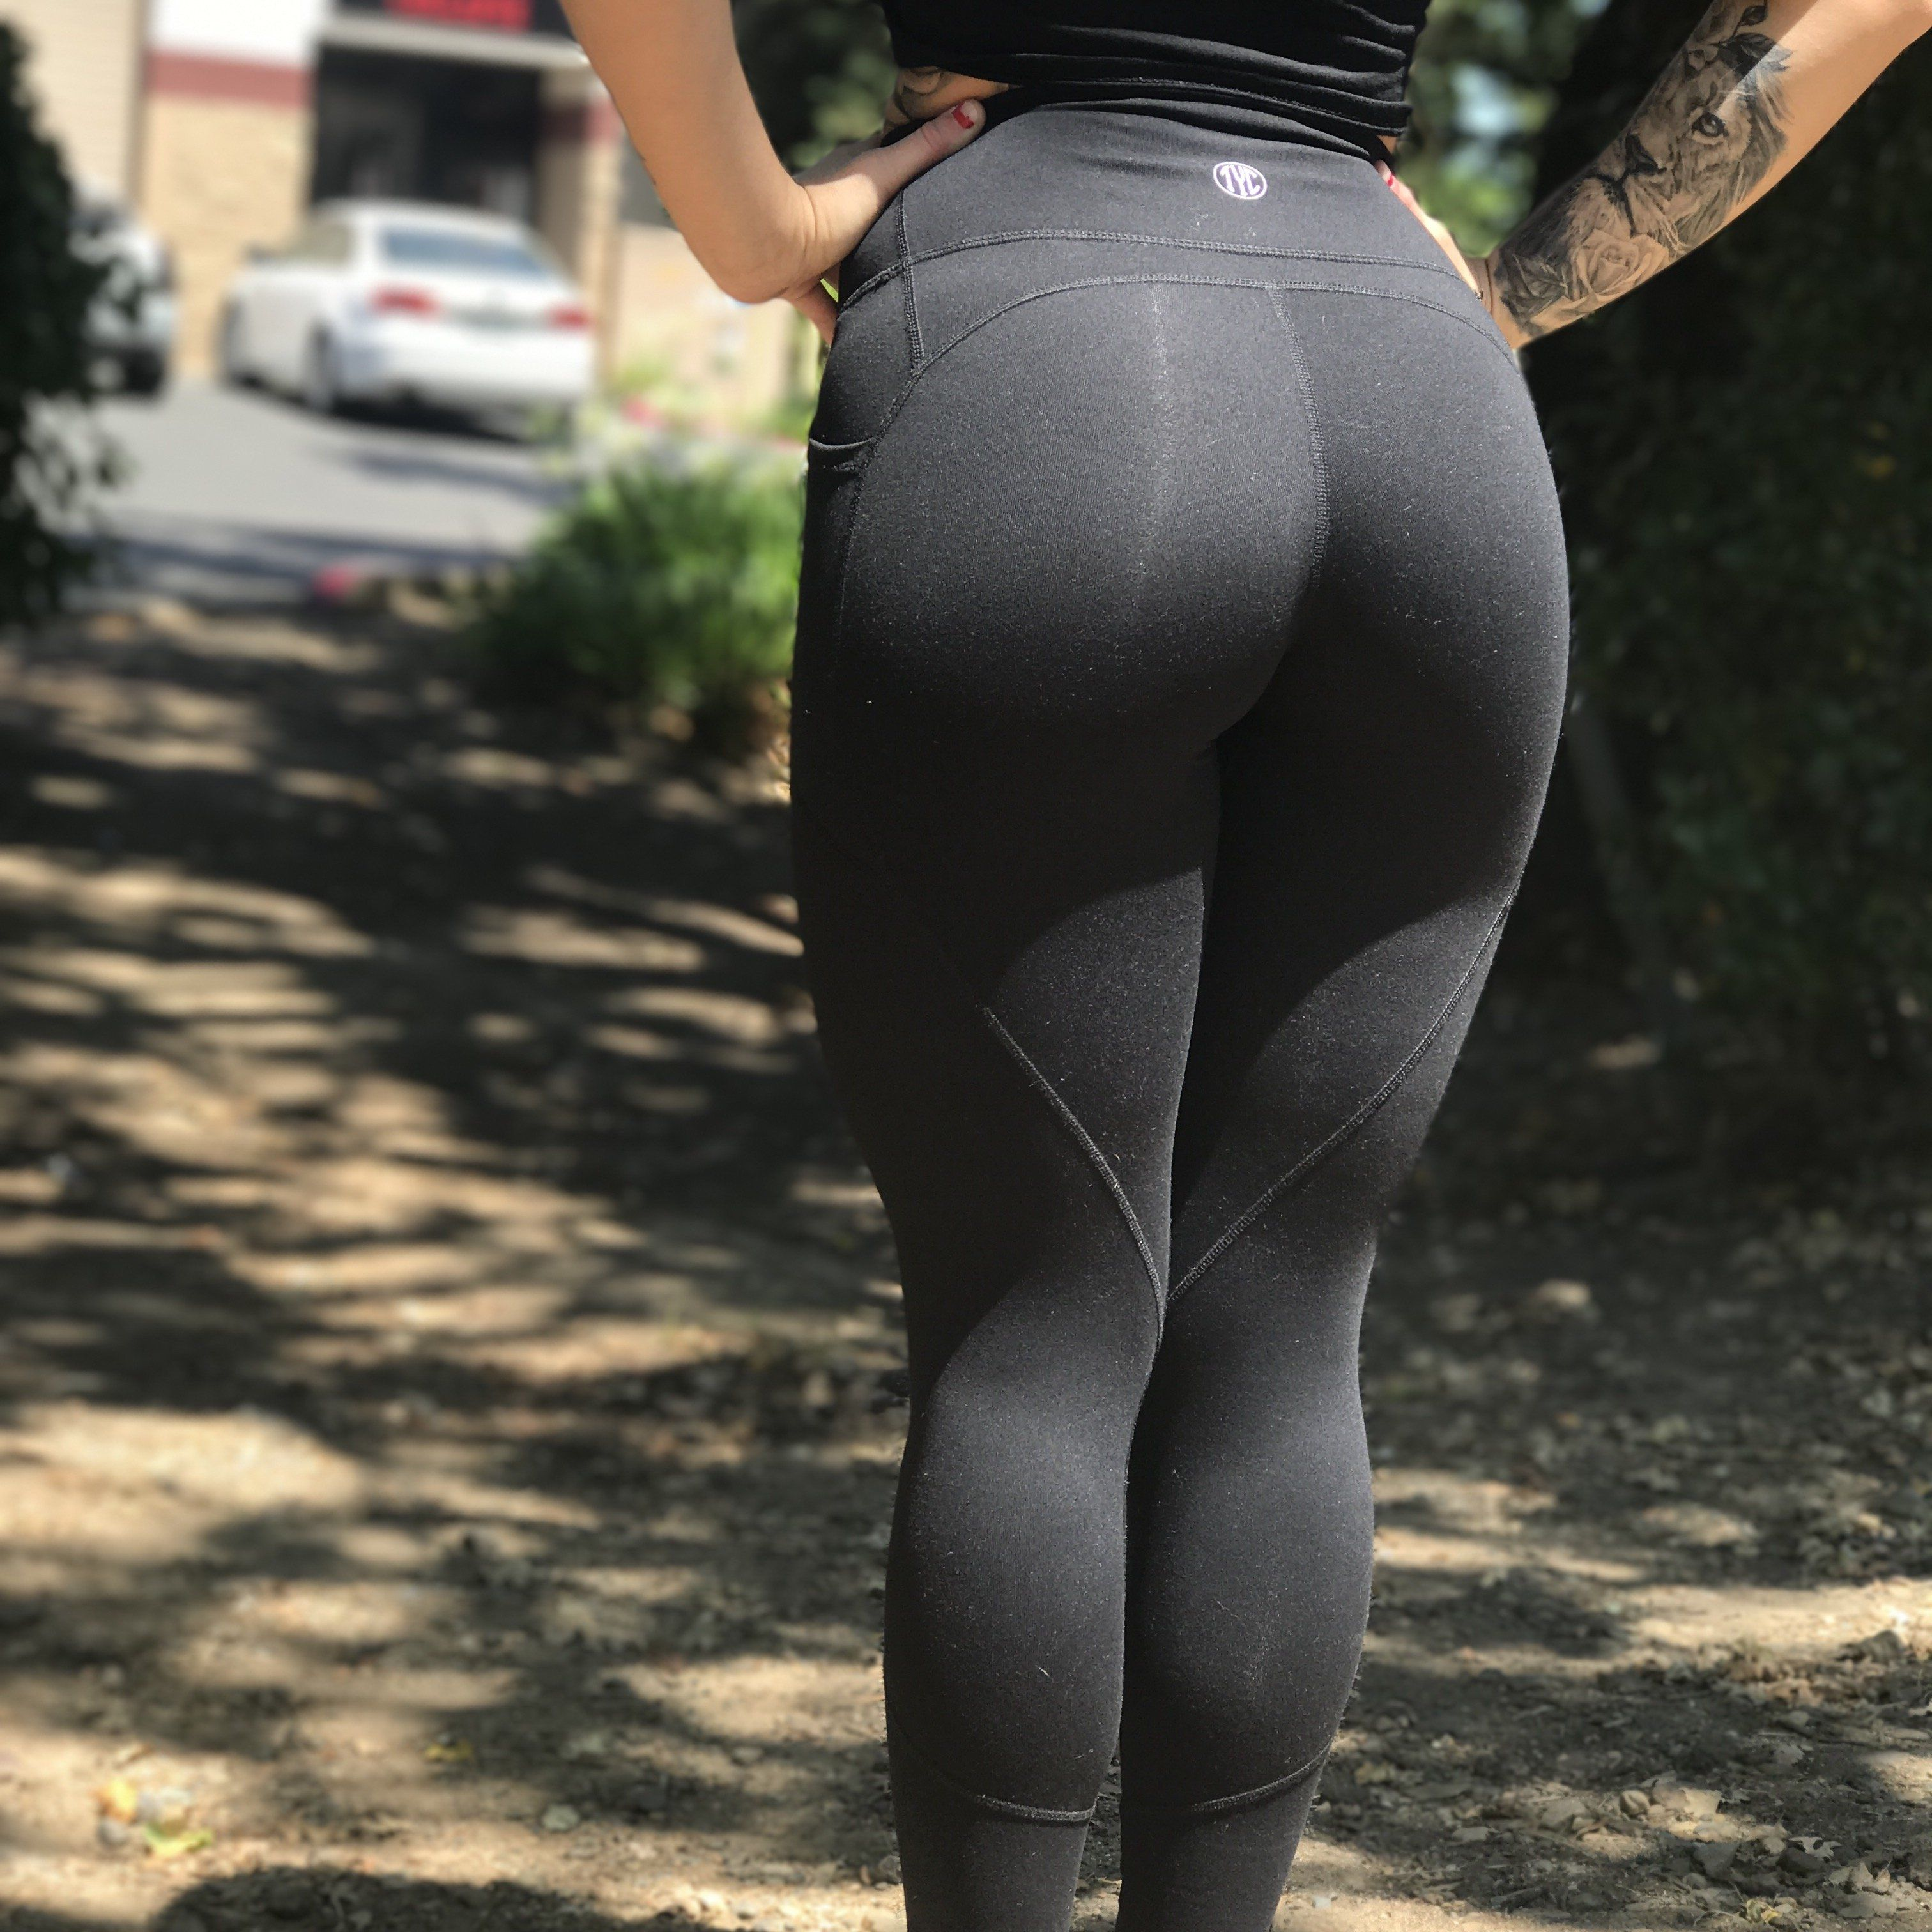 aefcf0f6e9501 Resilient Heart Booty Leggings- Black | Clothing to Buy | Black ...